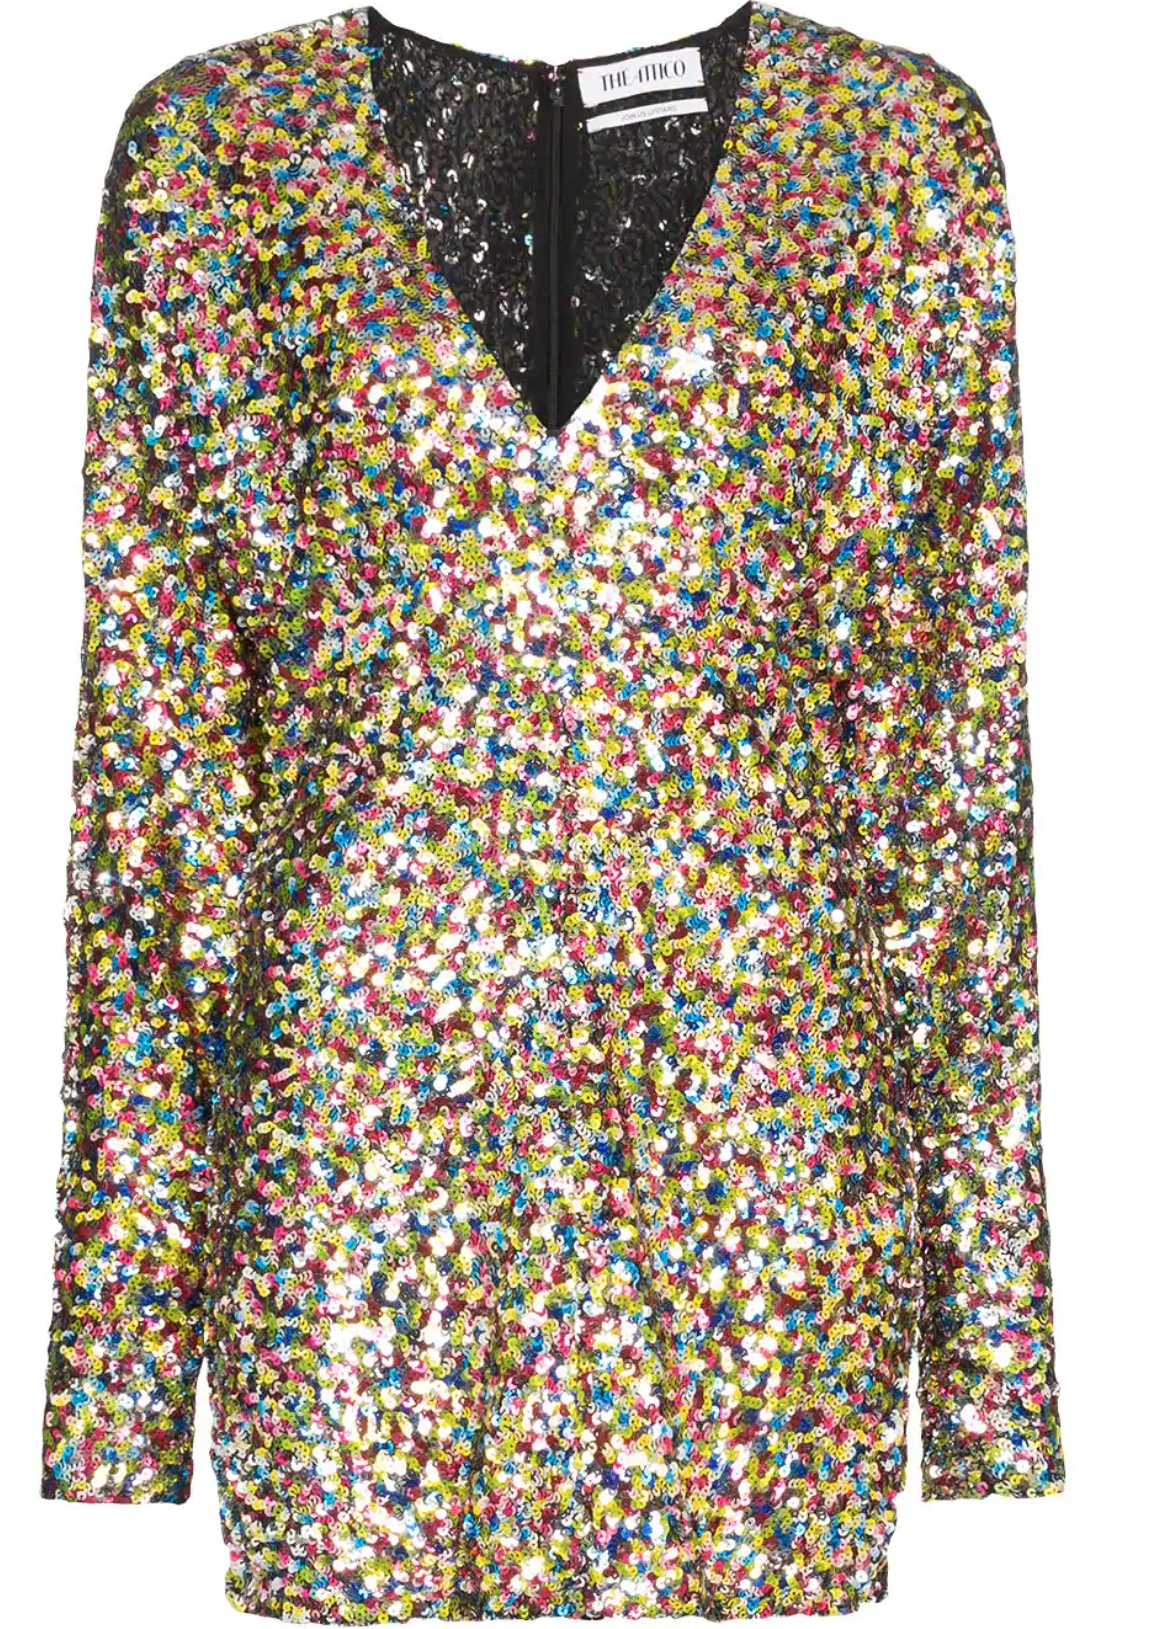 Multicolored sequin dress